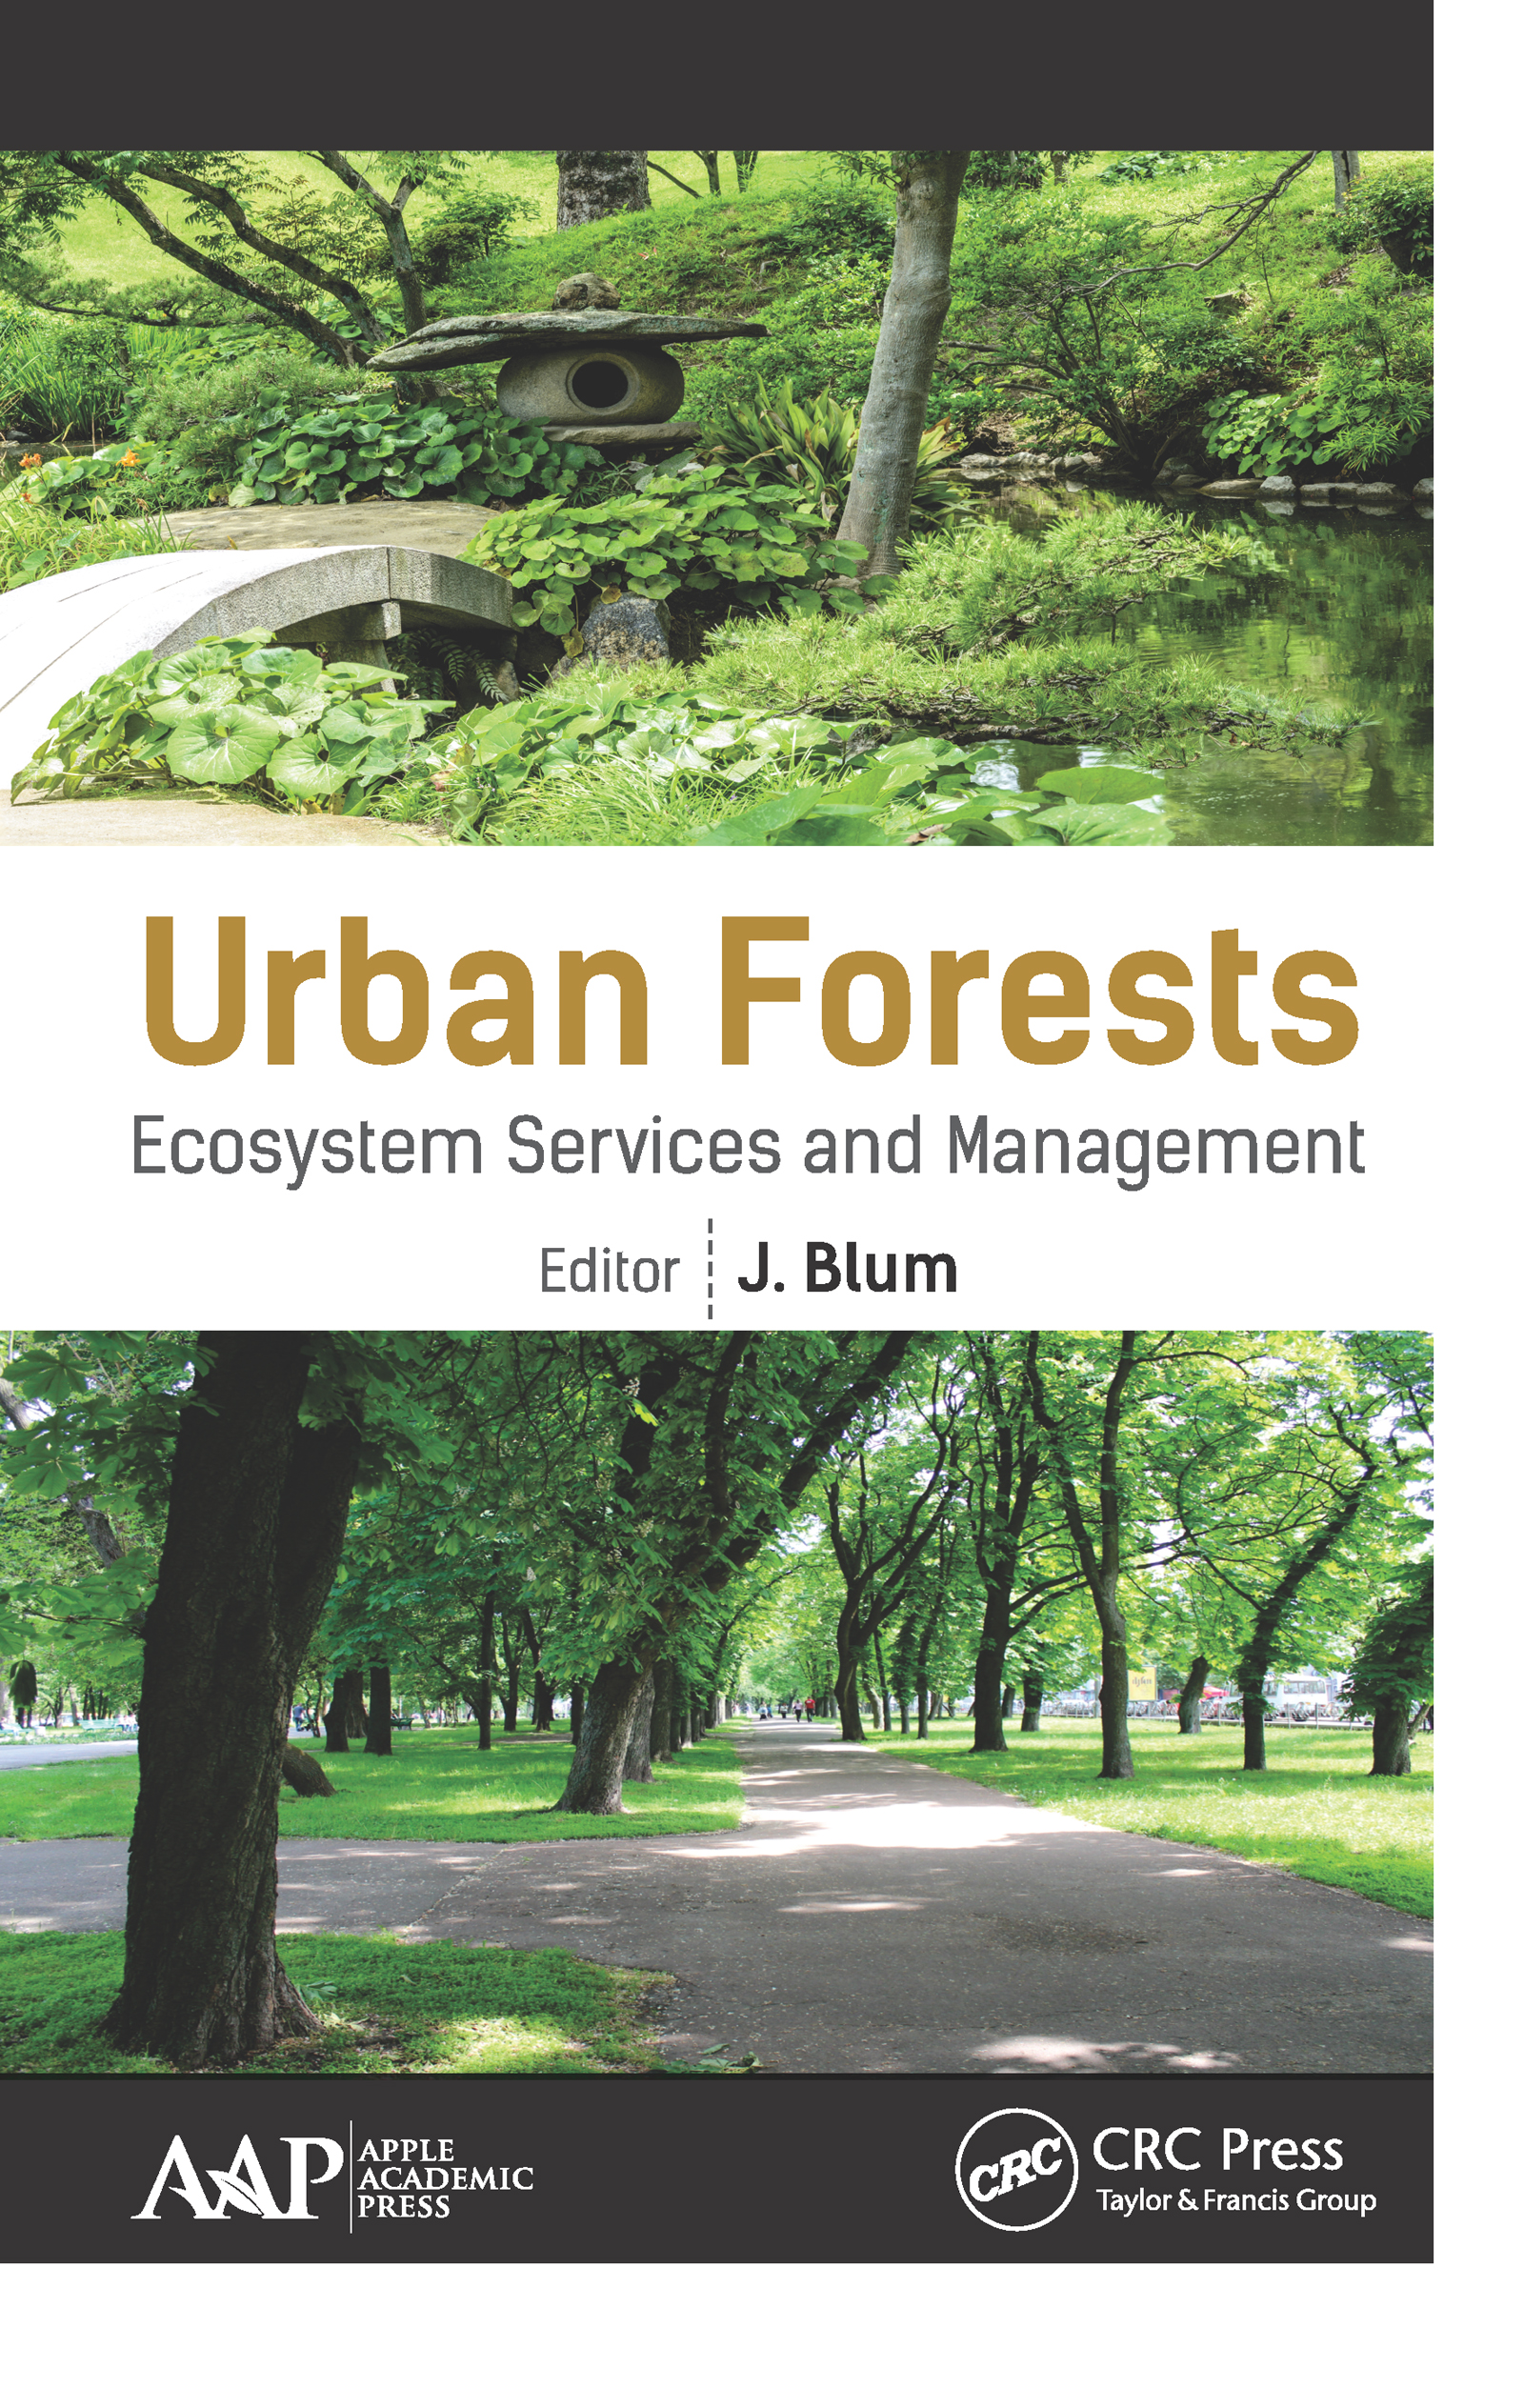 110 Years of Change in Urban Tree Stocks and Associated Carbon Storage